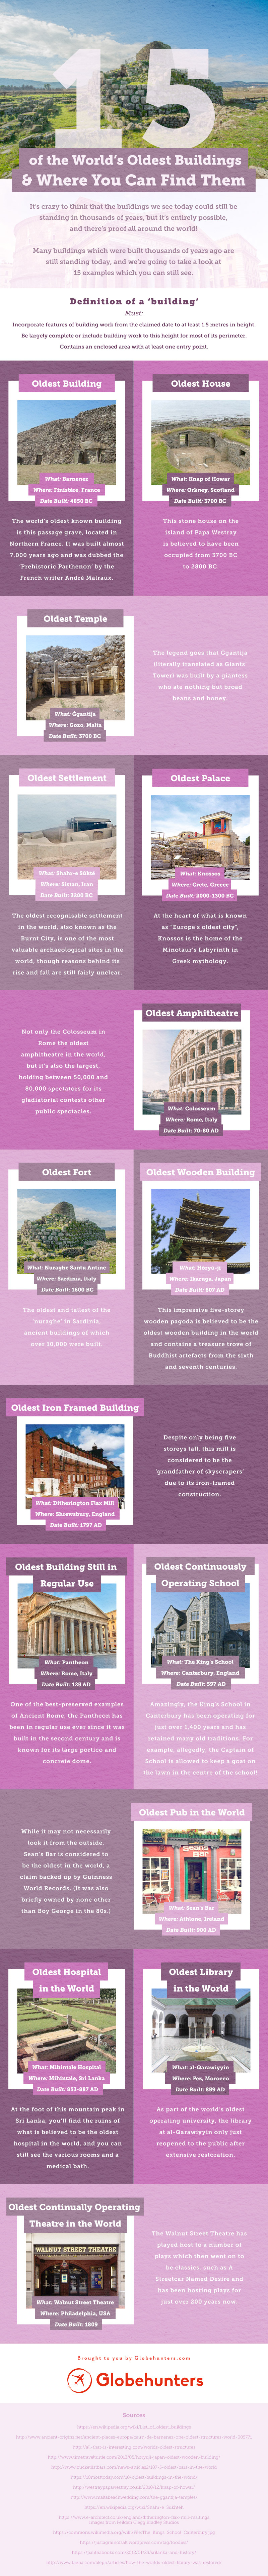 15 of The World's Oldest Buildings and Where You Can Find Them [Infographic]